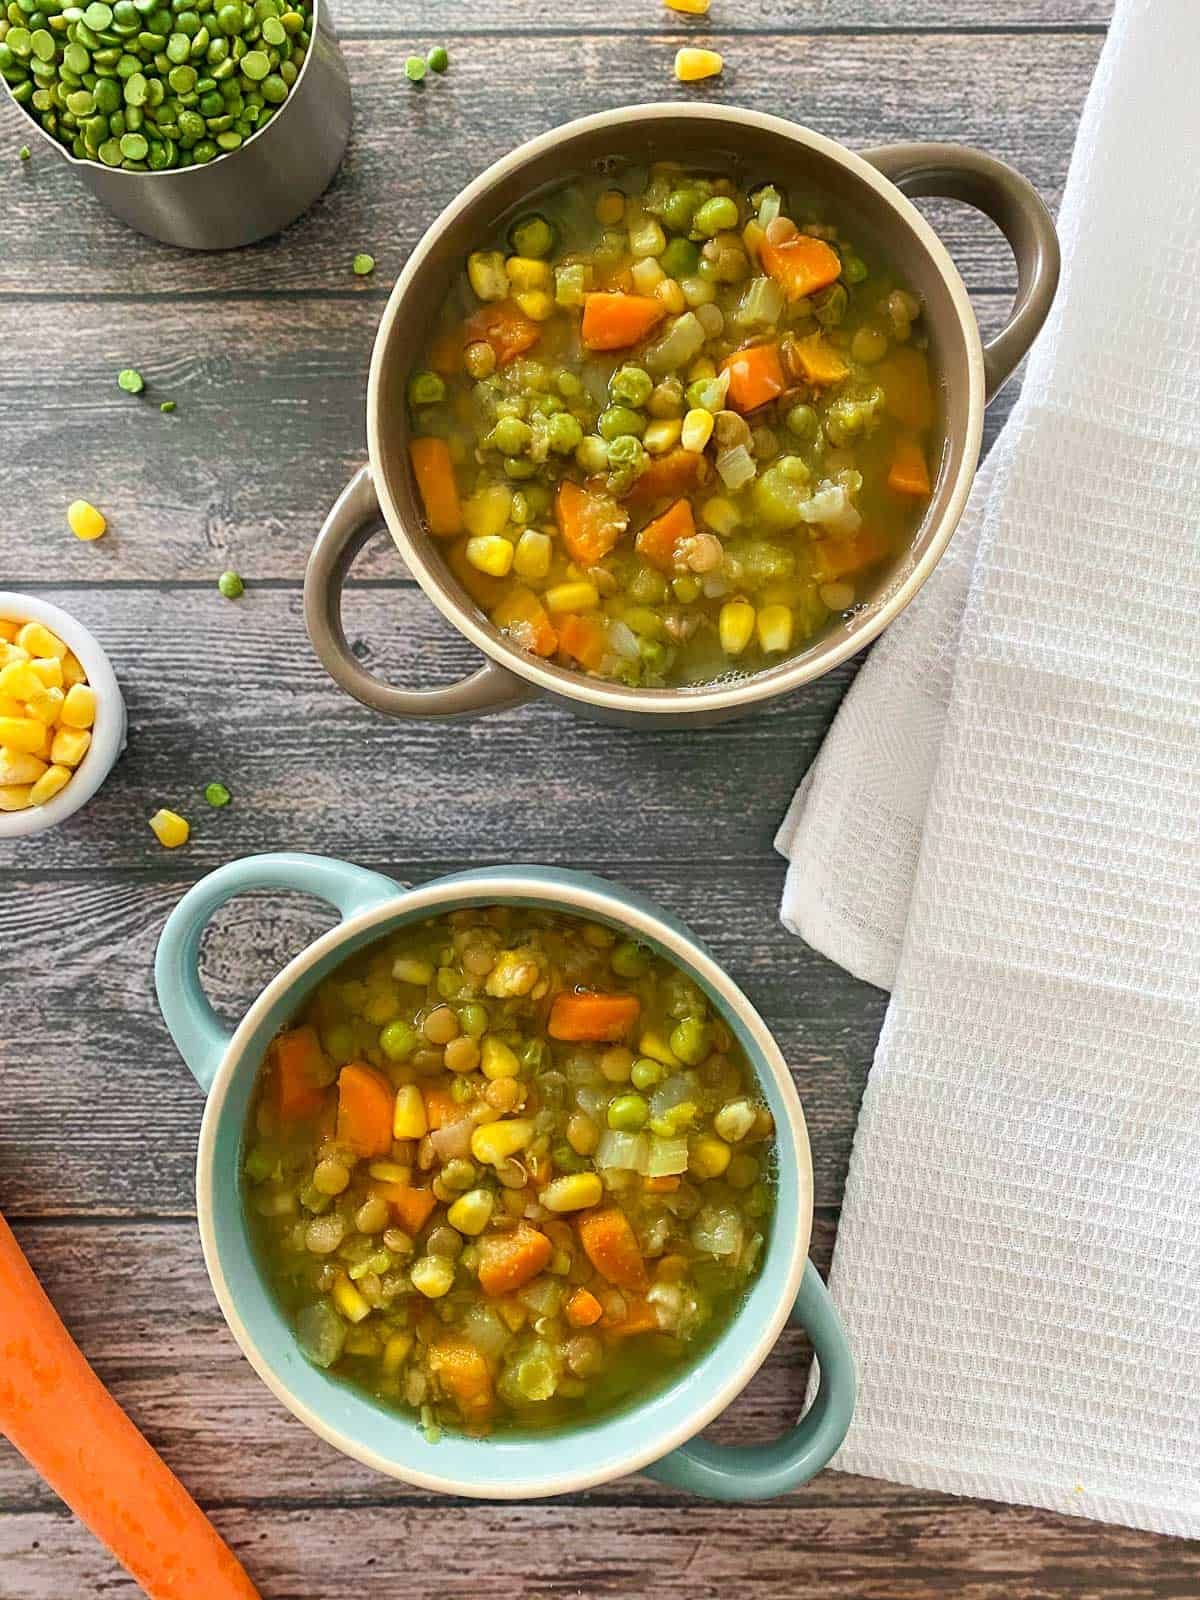 Two bowls of lentil soup with carrots, corn and peas on brown deck.